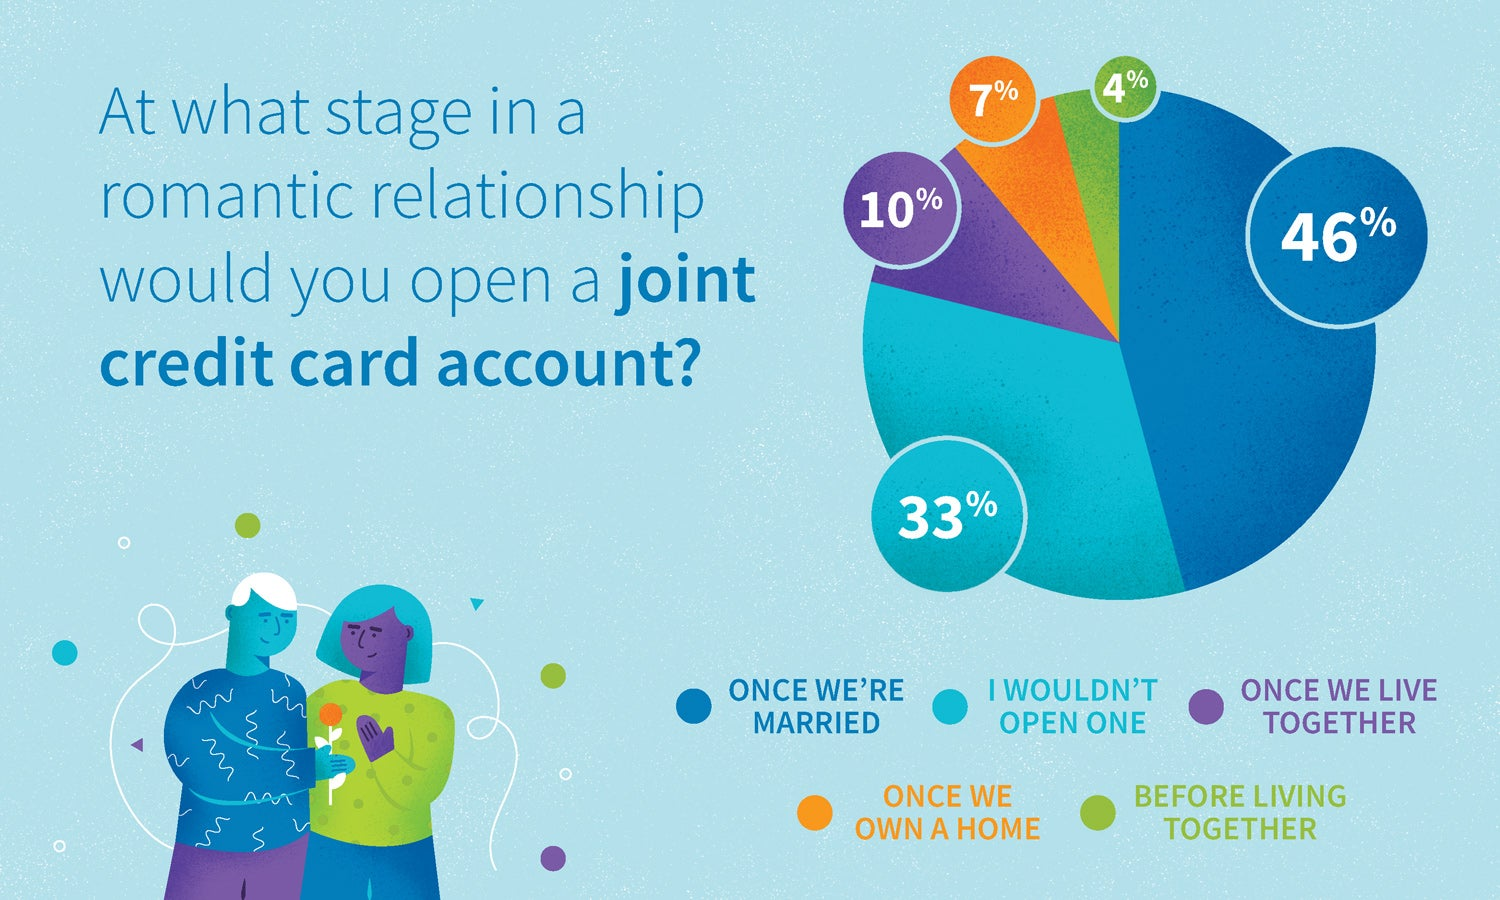 Graph: at what stage in a romantic relationship would you open a joint credit card account?